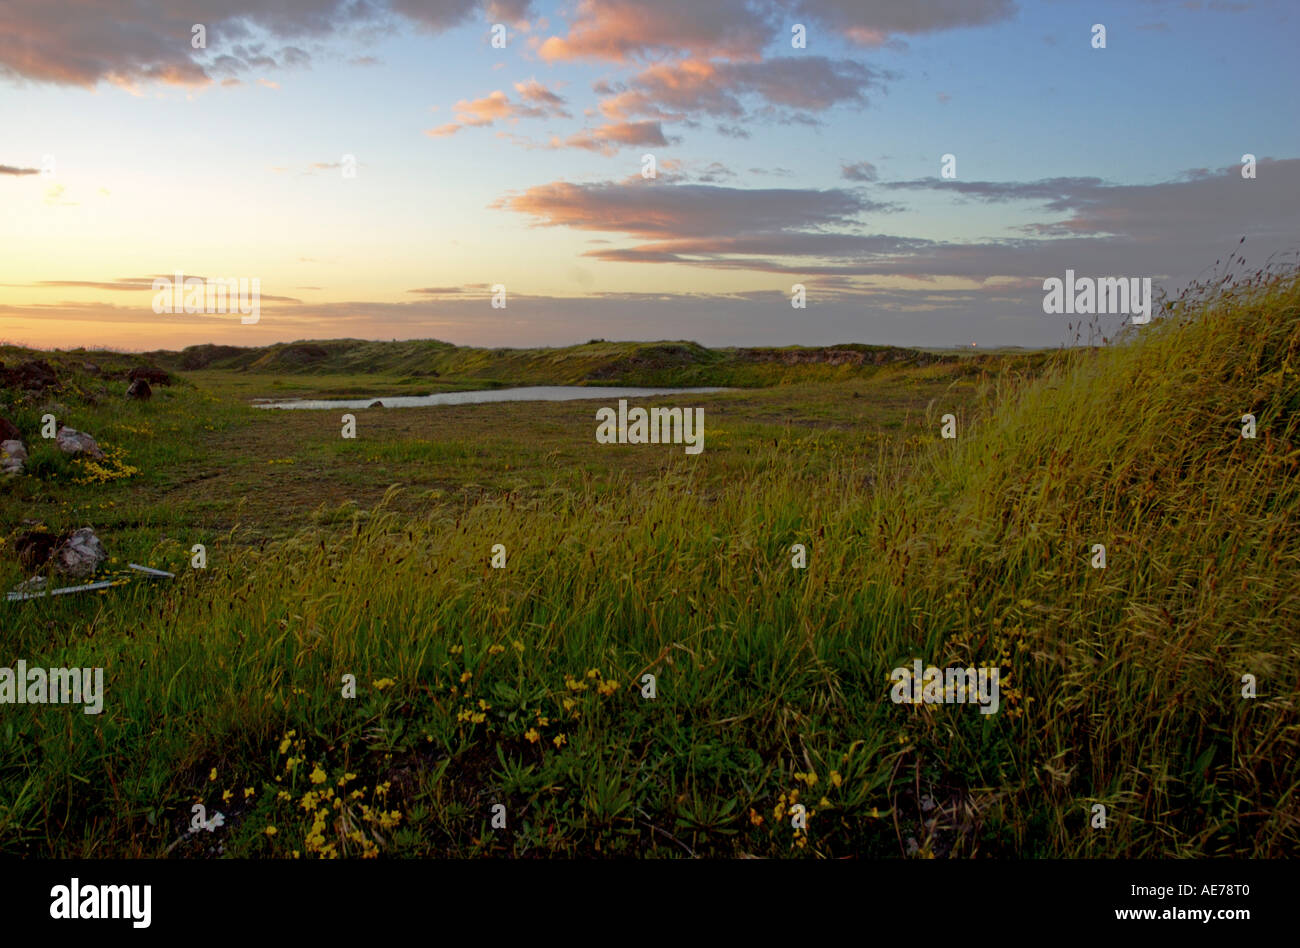 landscape with steelworks - Stock Image